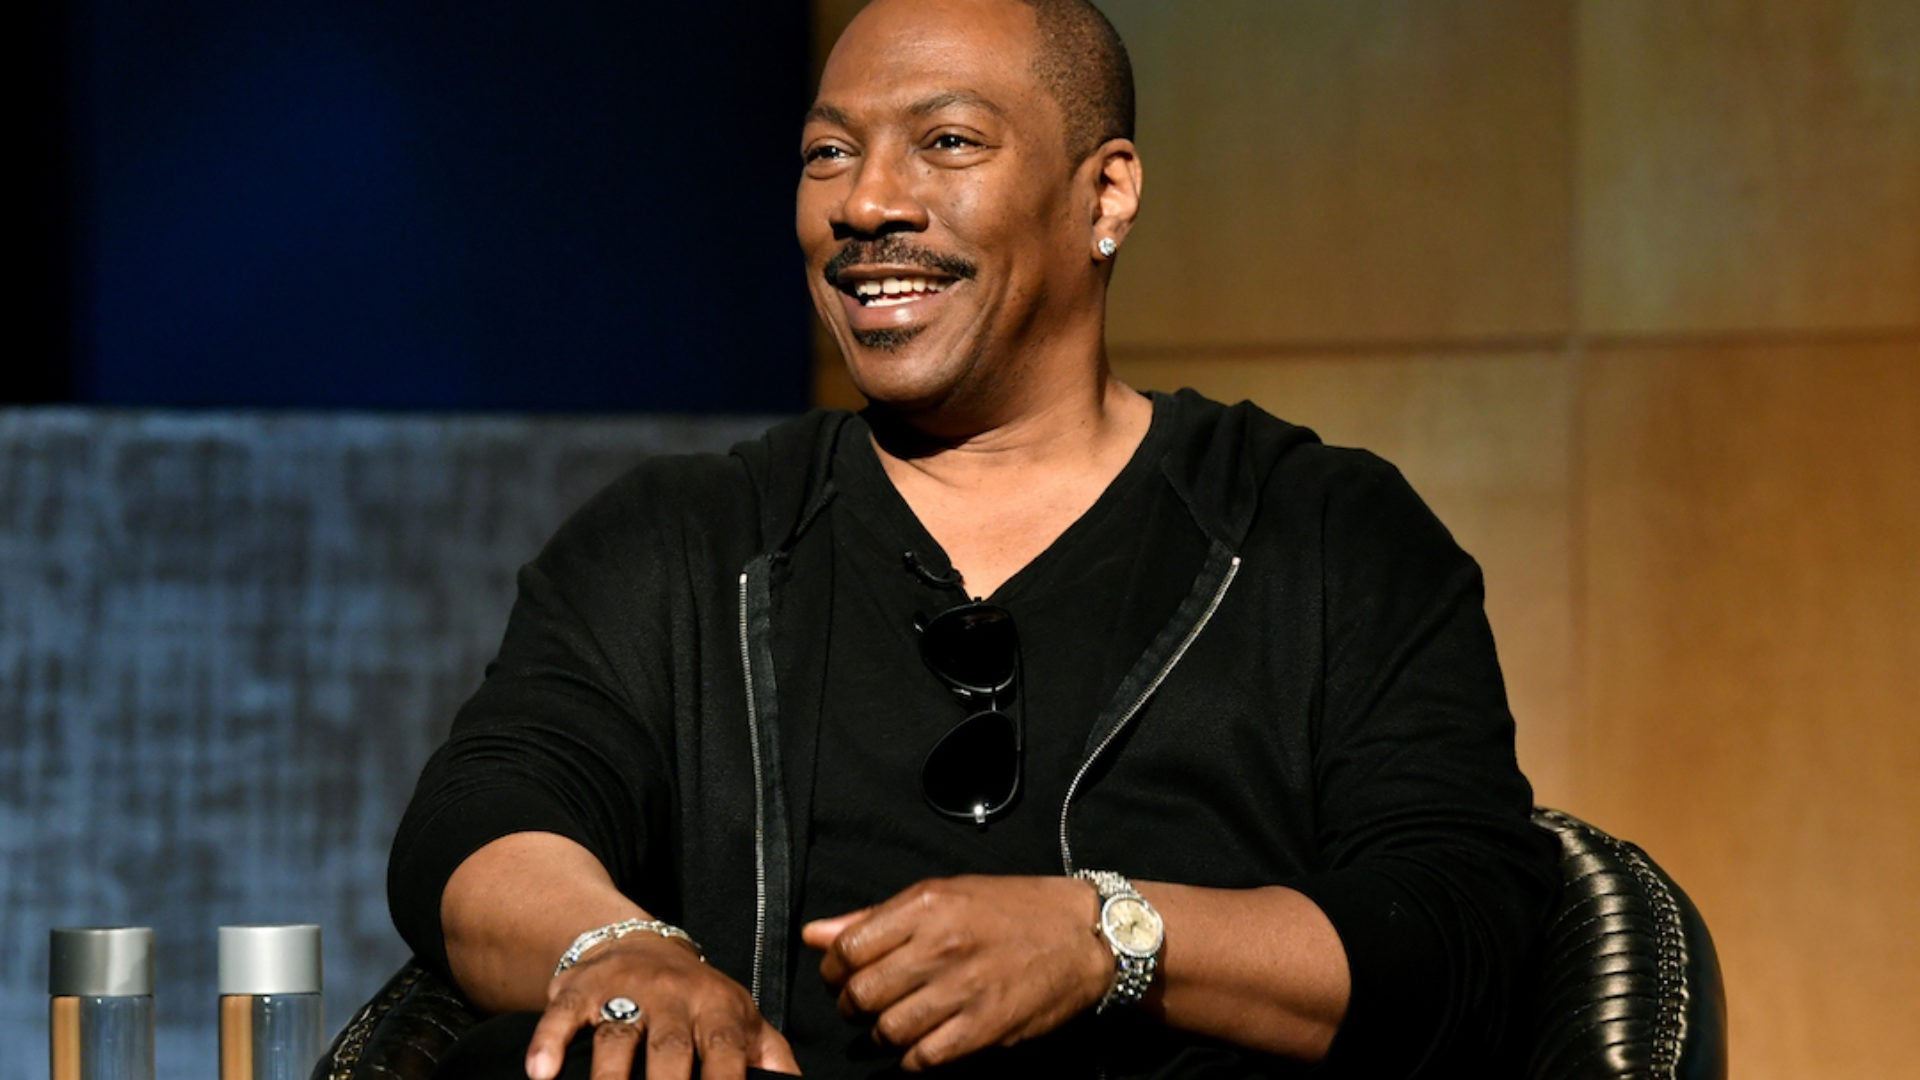 Eddie Murphy Returning To Stand-Up With New Comedy Tour In 2020